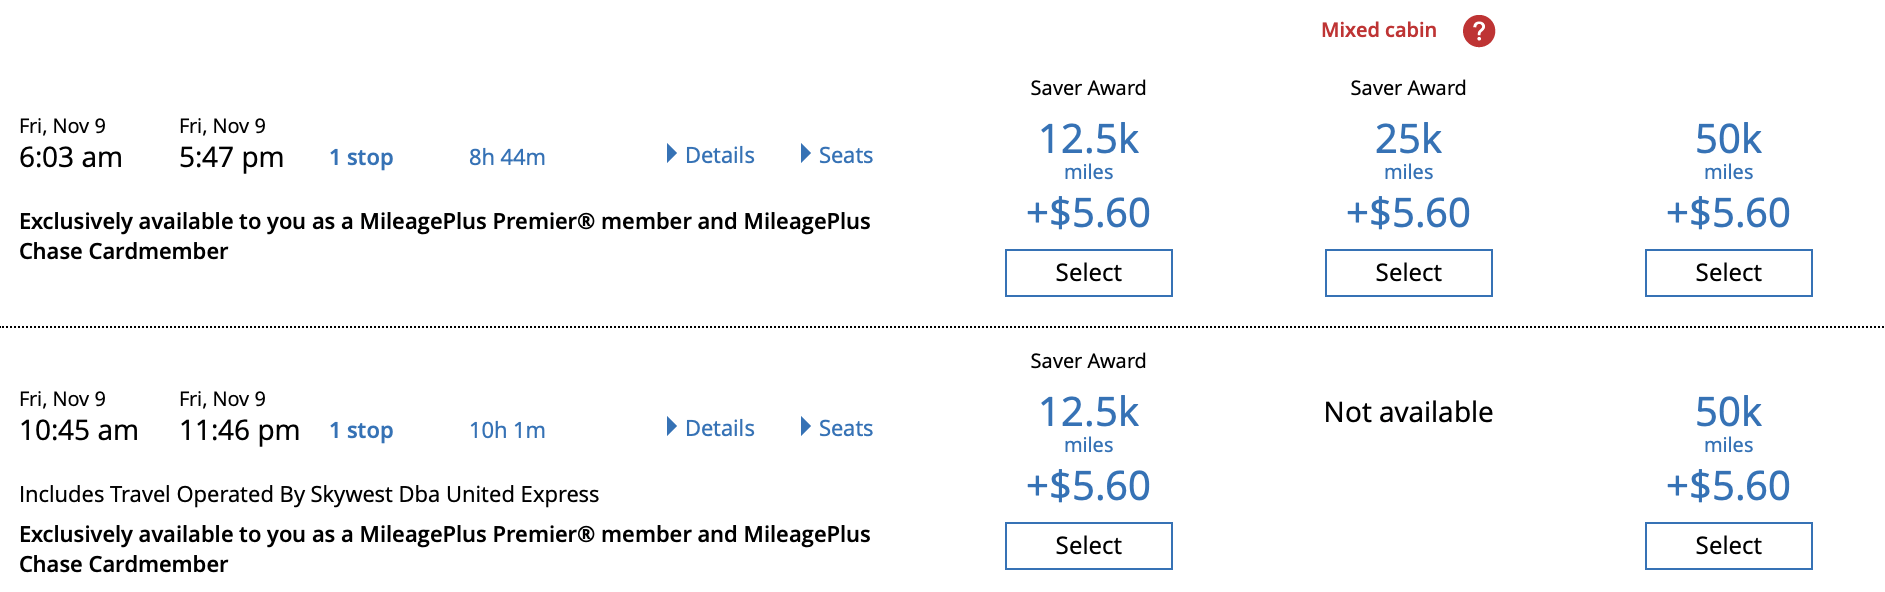 United credit card holders and elite status members get better award availability.